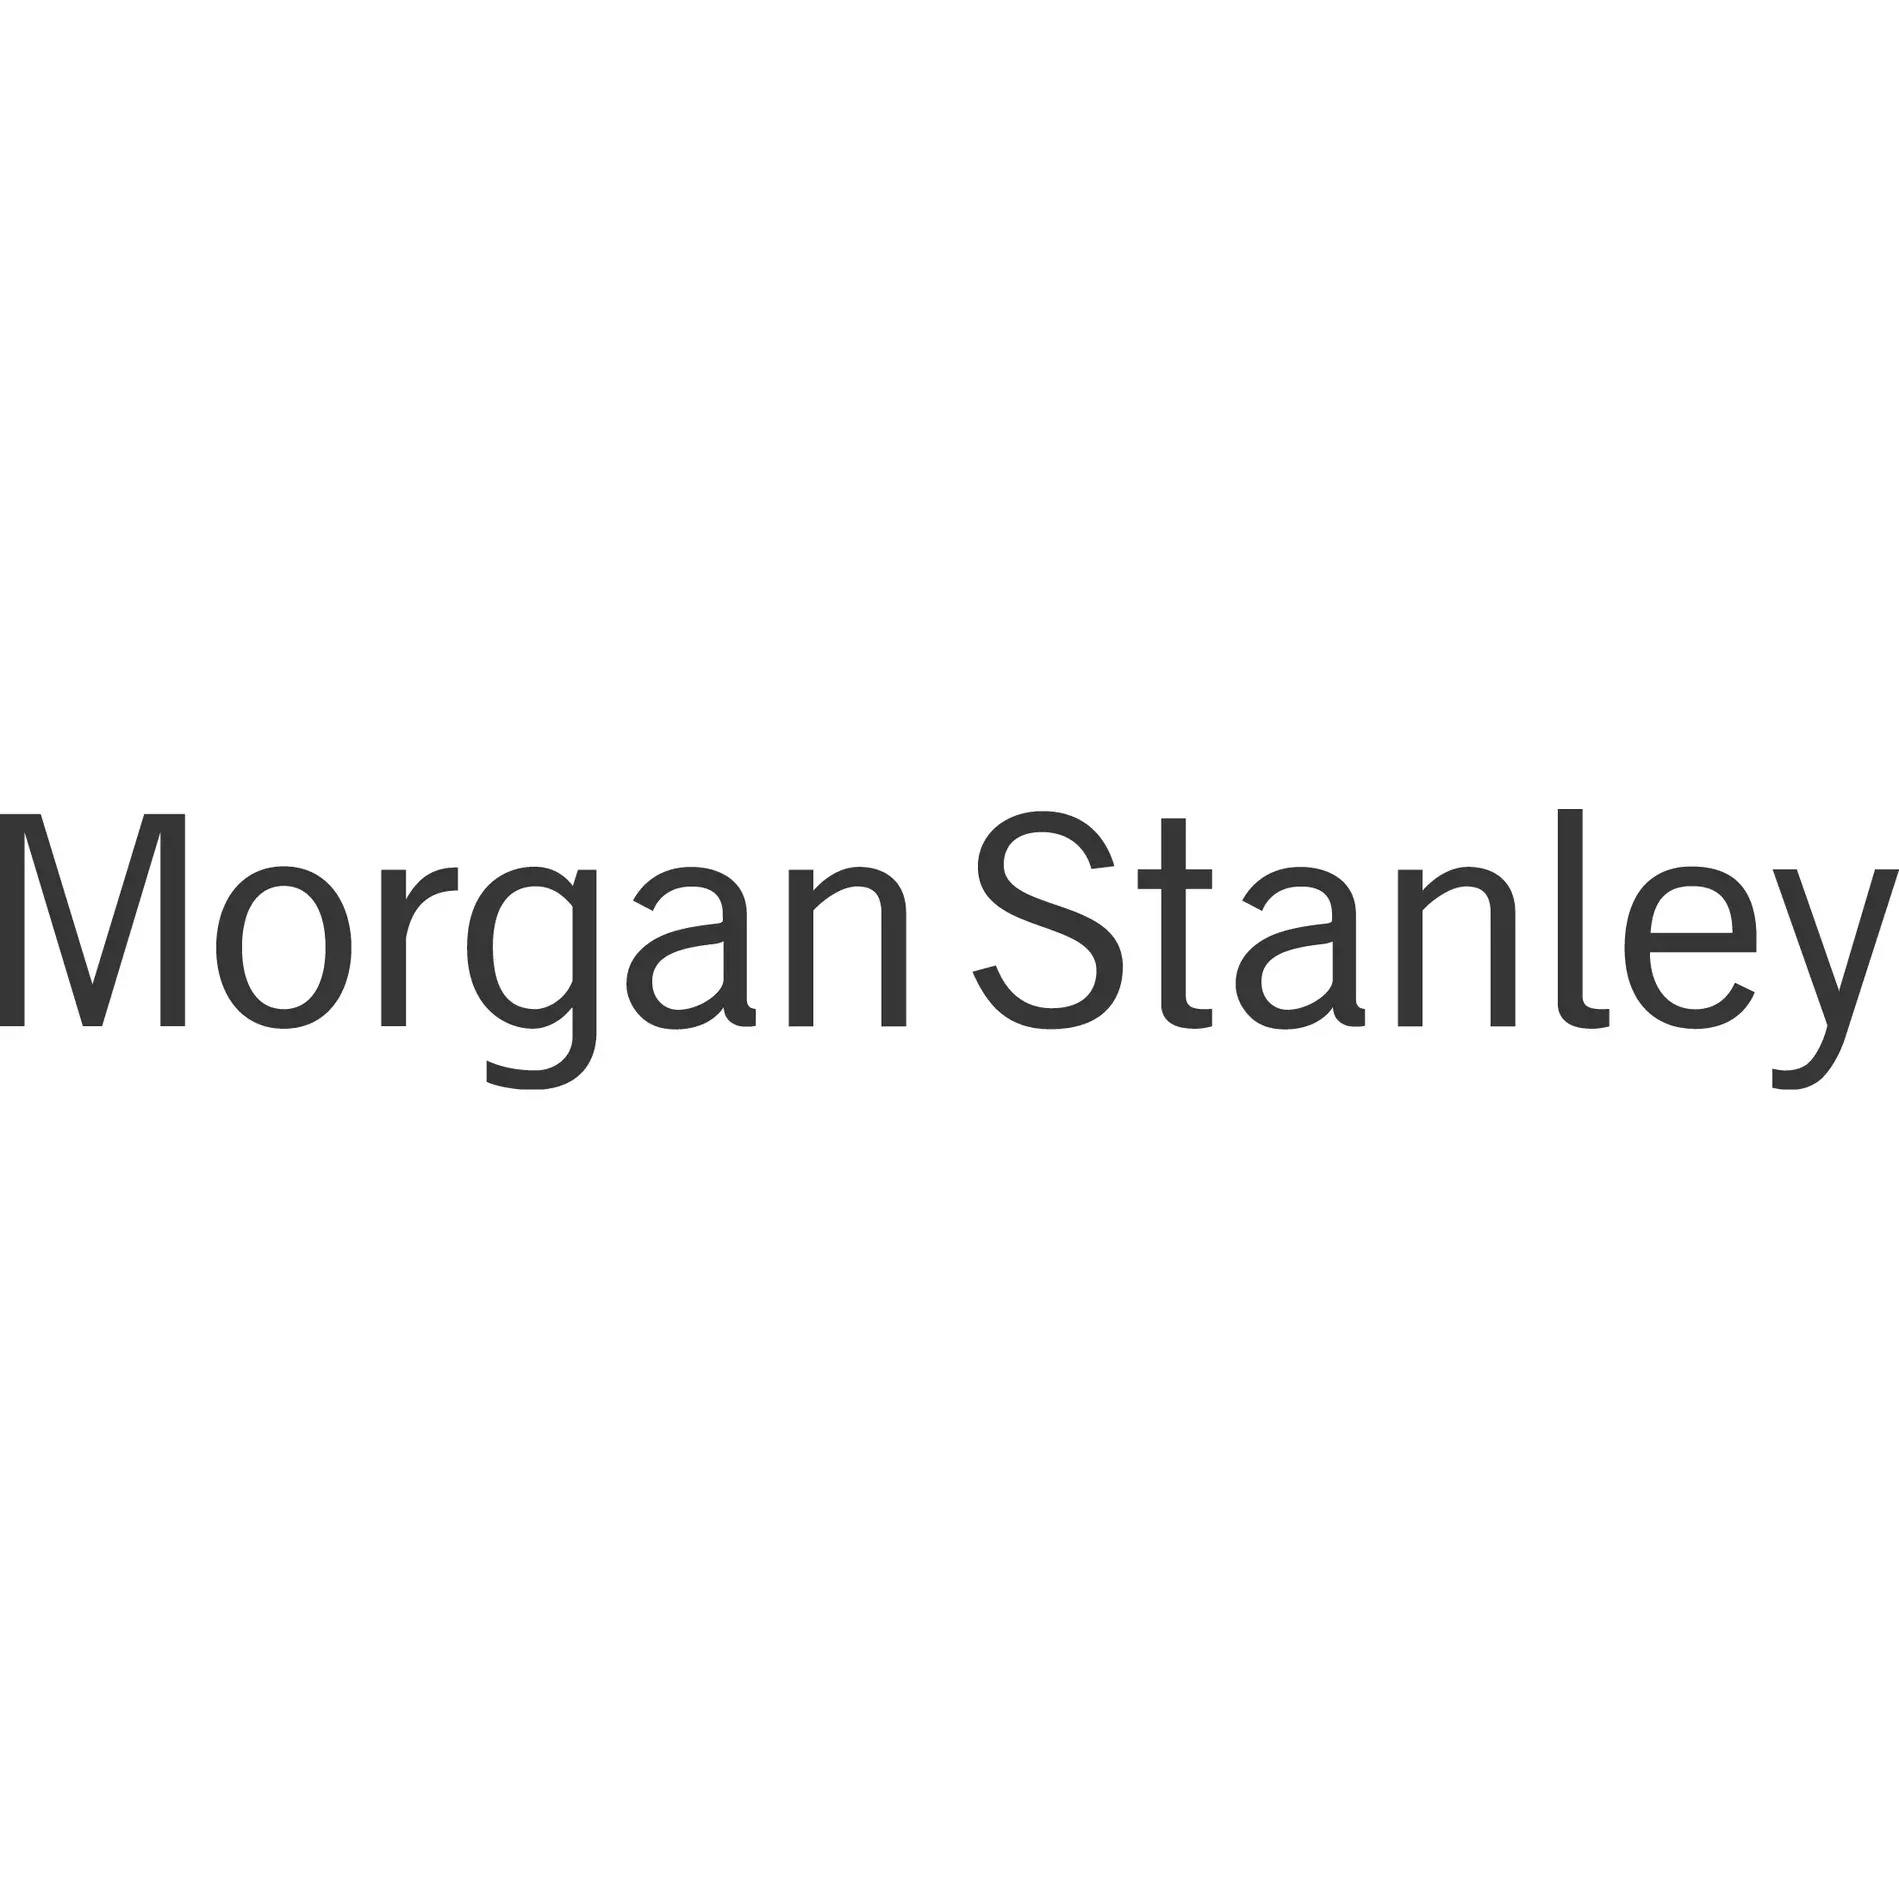 The Lee Group - Morgan Stanley